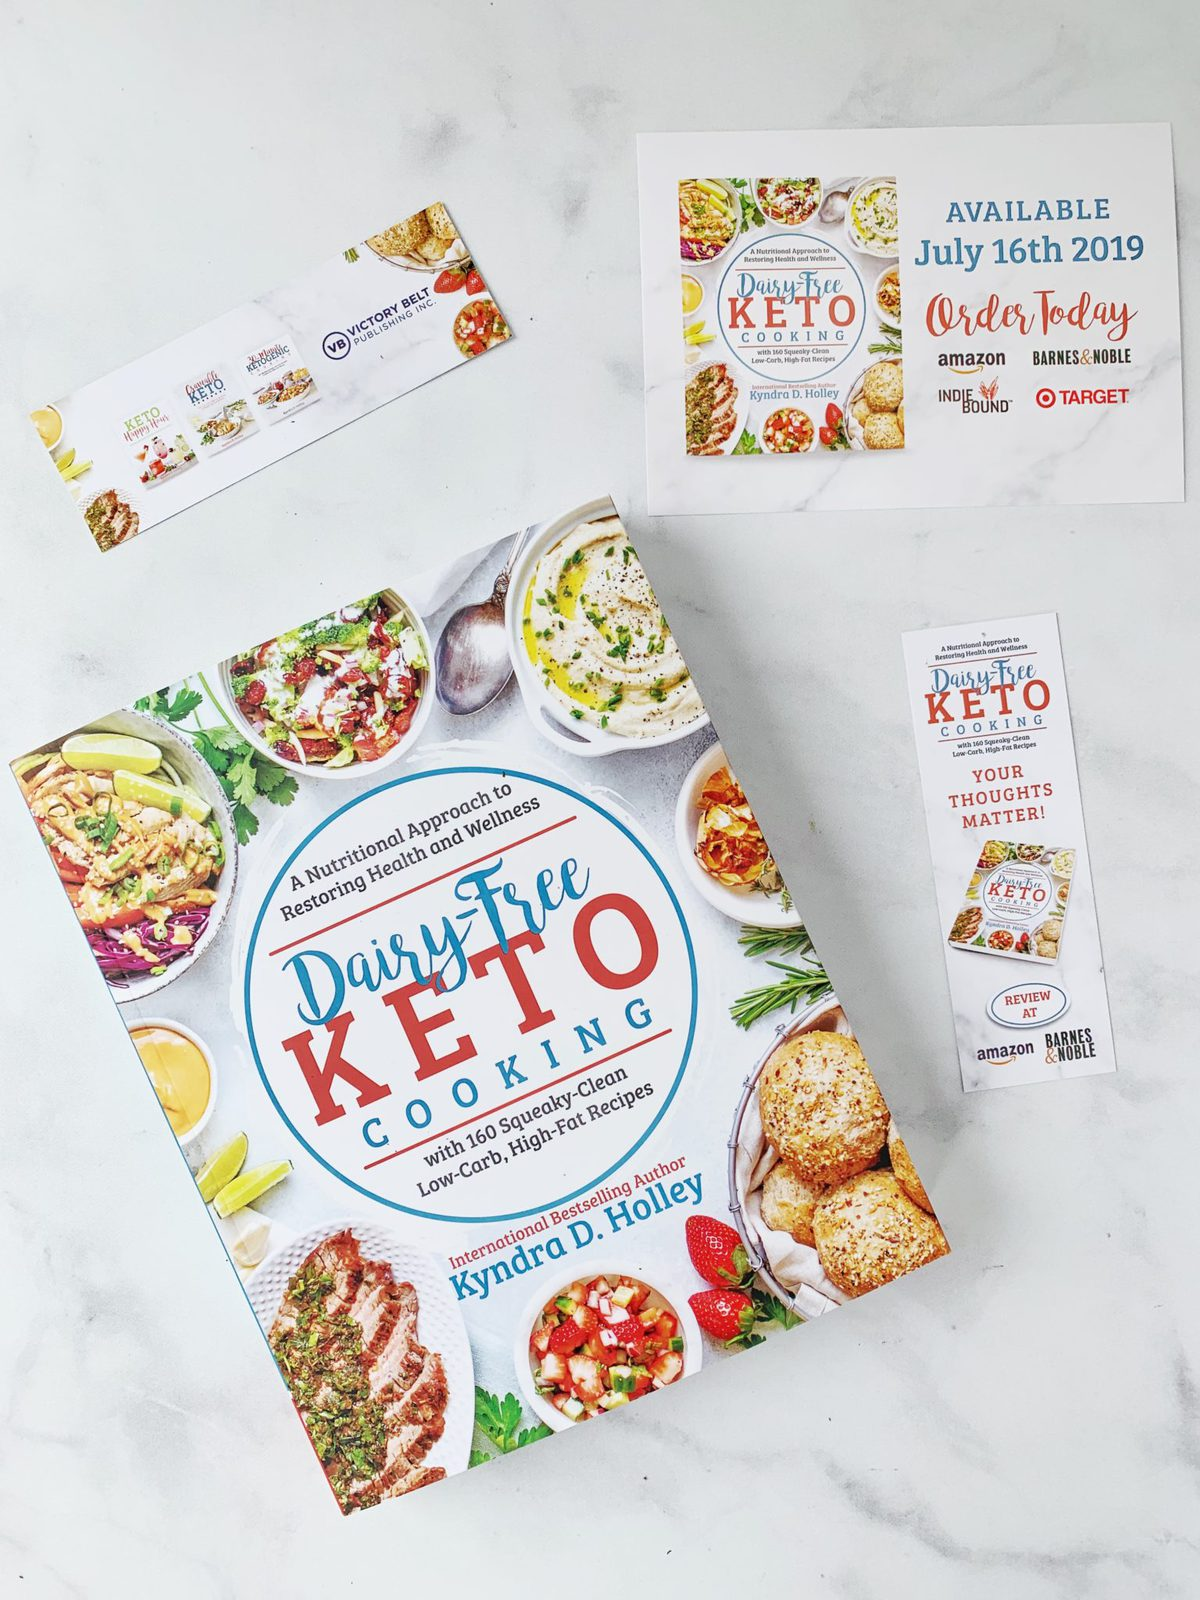 Dairy Free Keto Cooking by Kyndra D. Holley | Peace Love and Low Carb